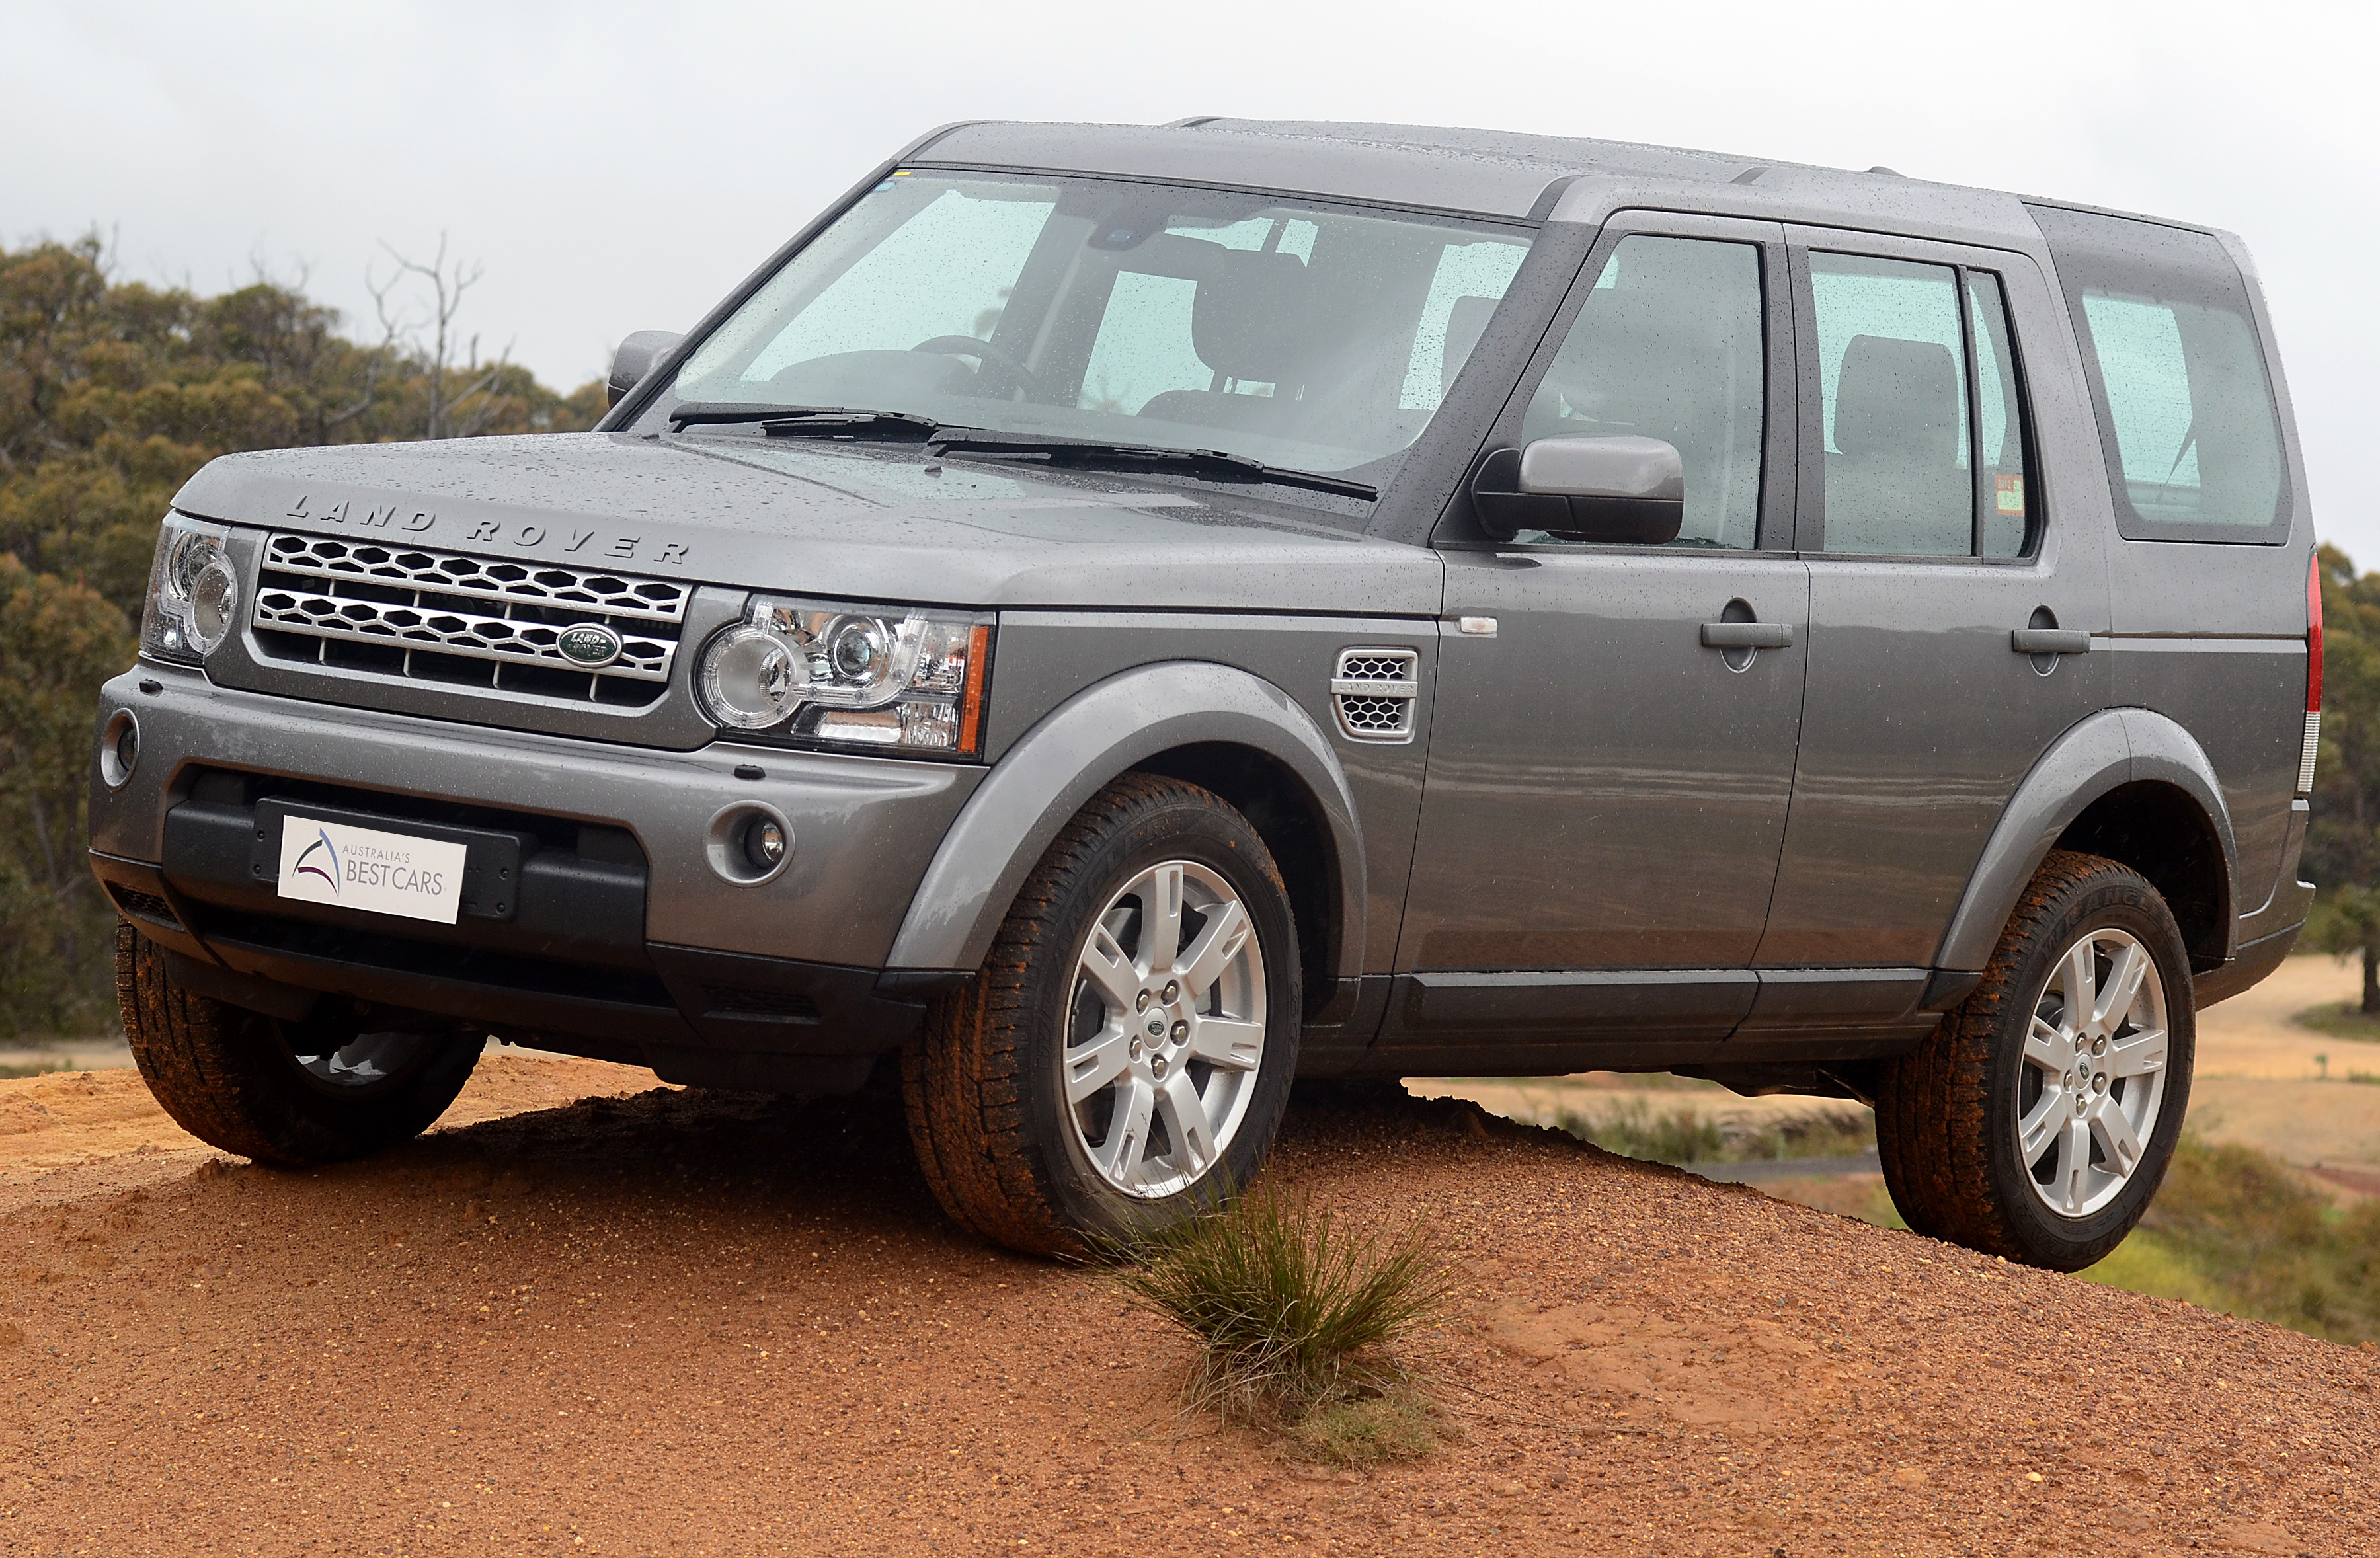 land rover discovery images #8